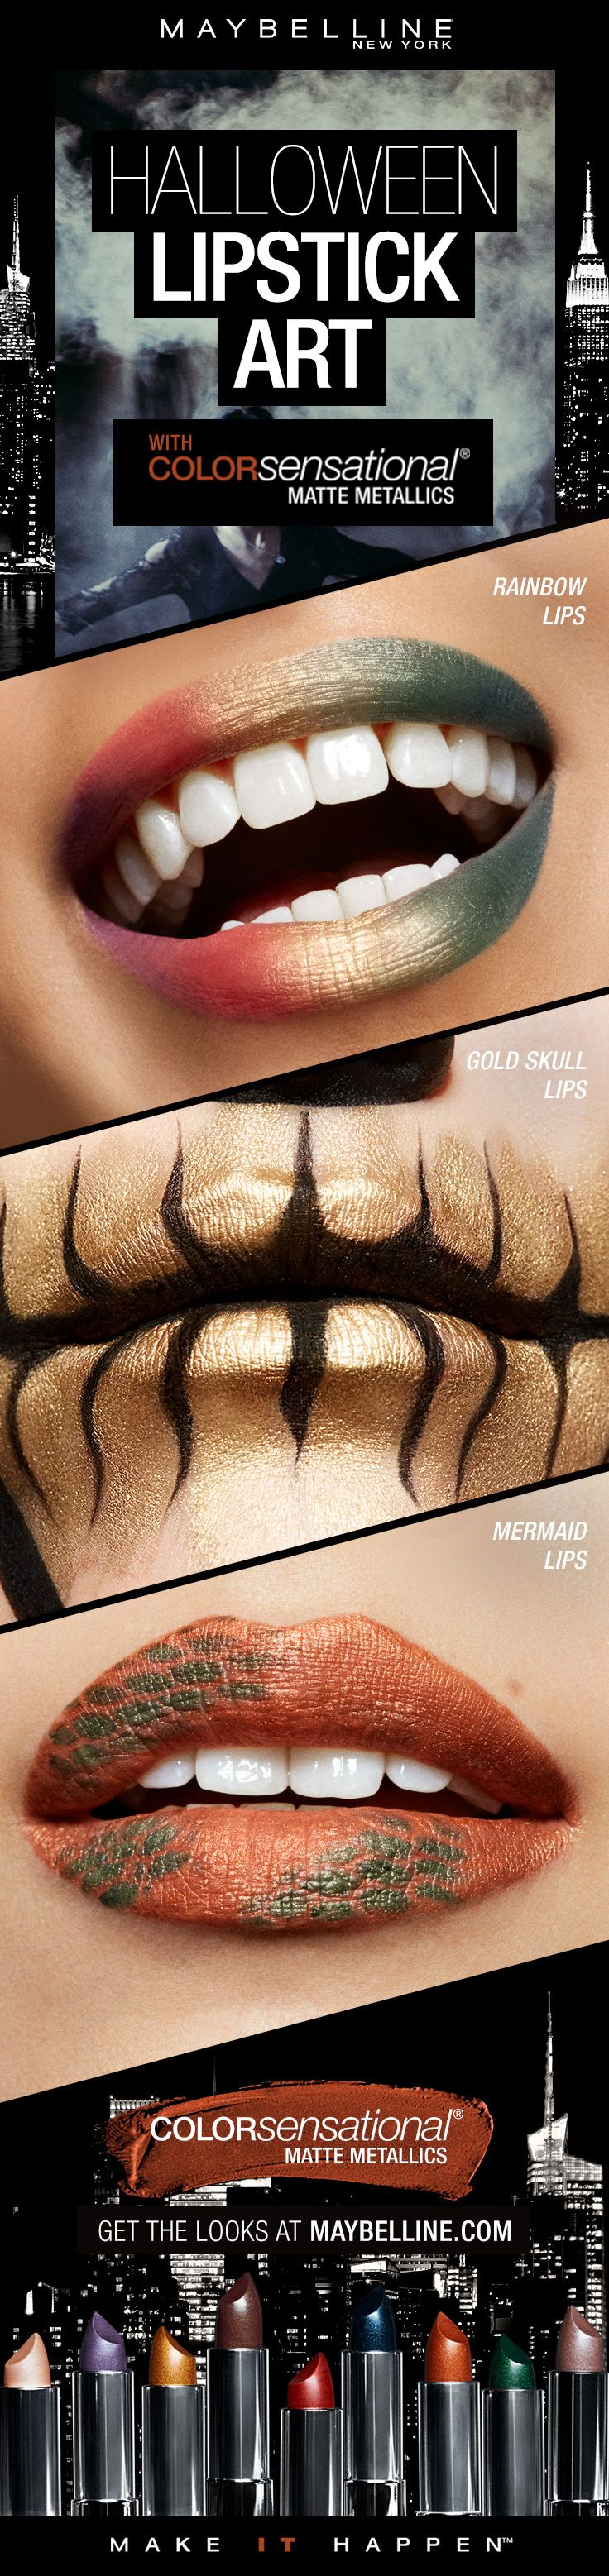 Halloween makeup is the perfect time to experiment with makeup trends like lip art.  Try recreating a rainbow lip look, gold skull lips look, or mermaid lips look with our Matte Metallics Lipsticks.